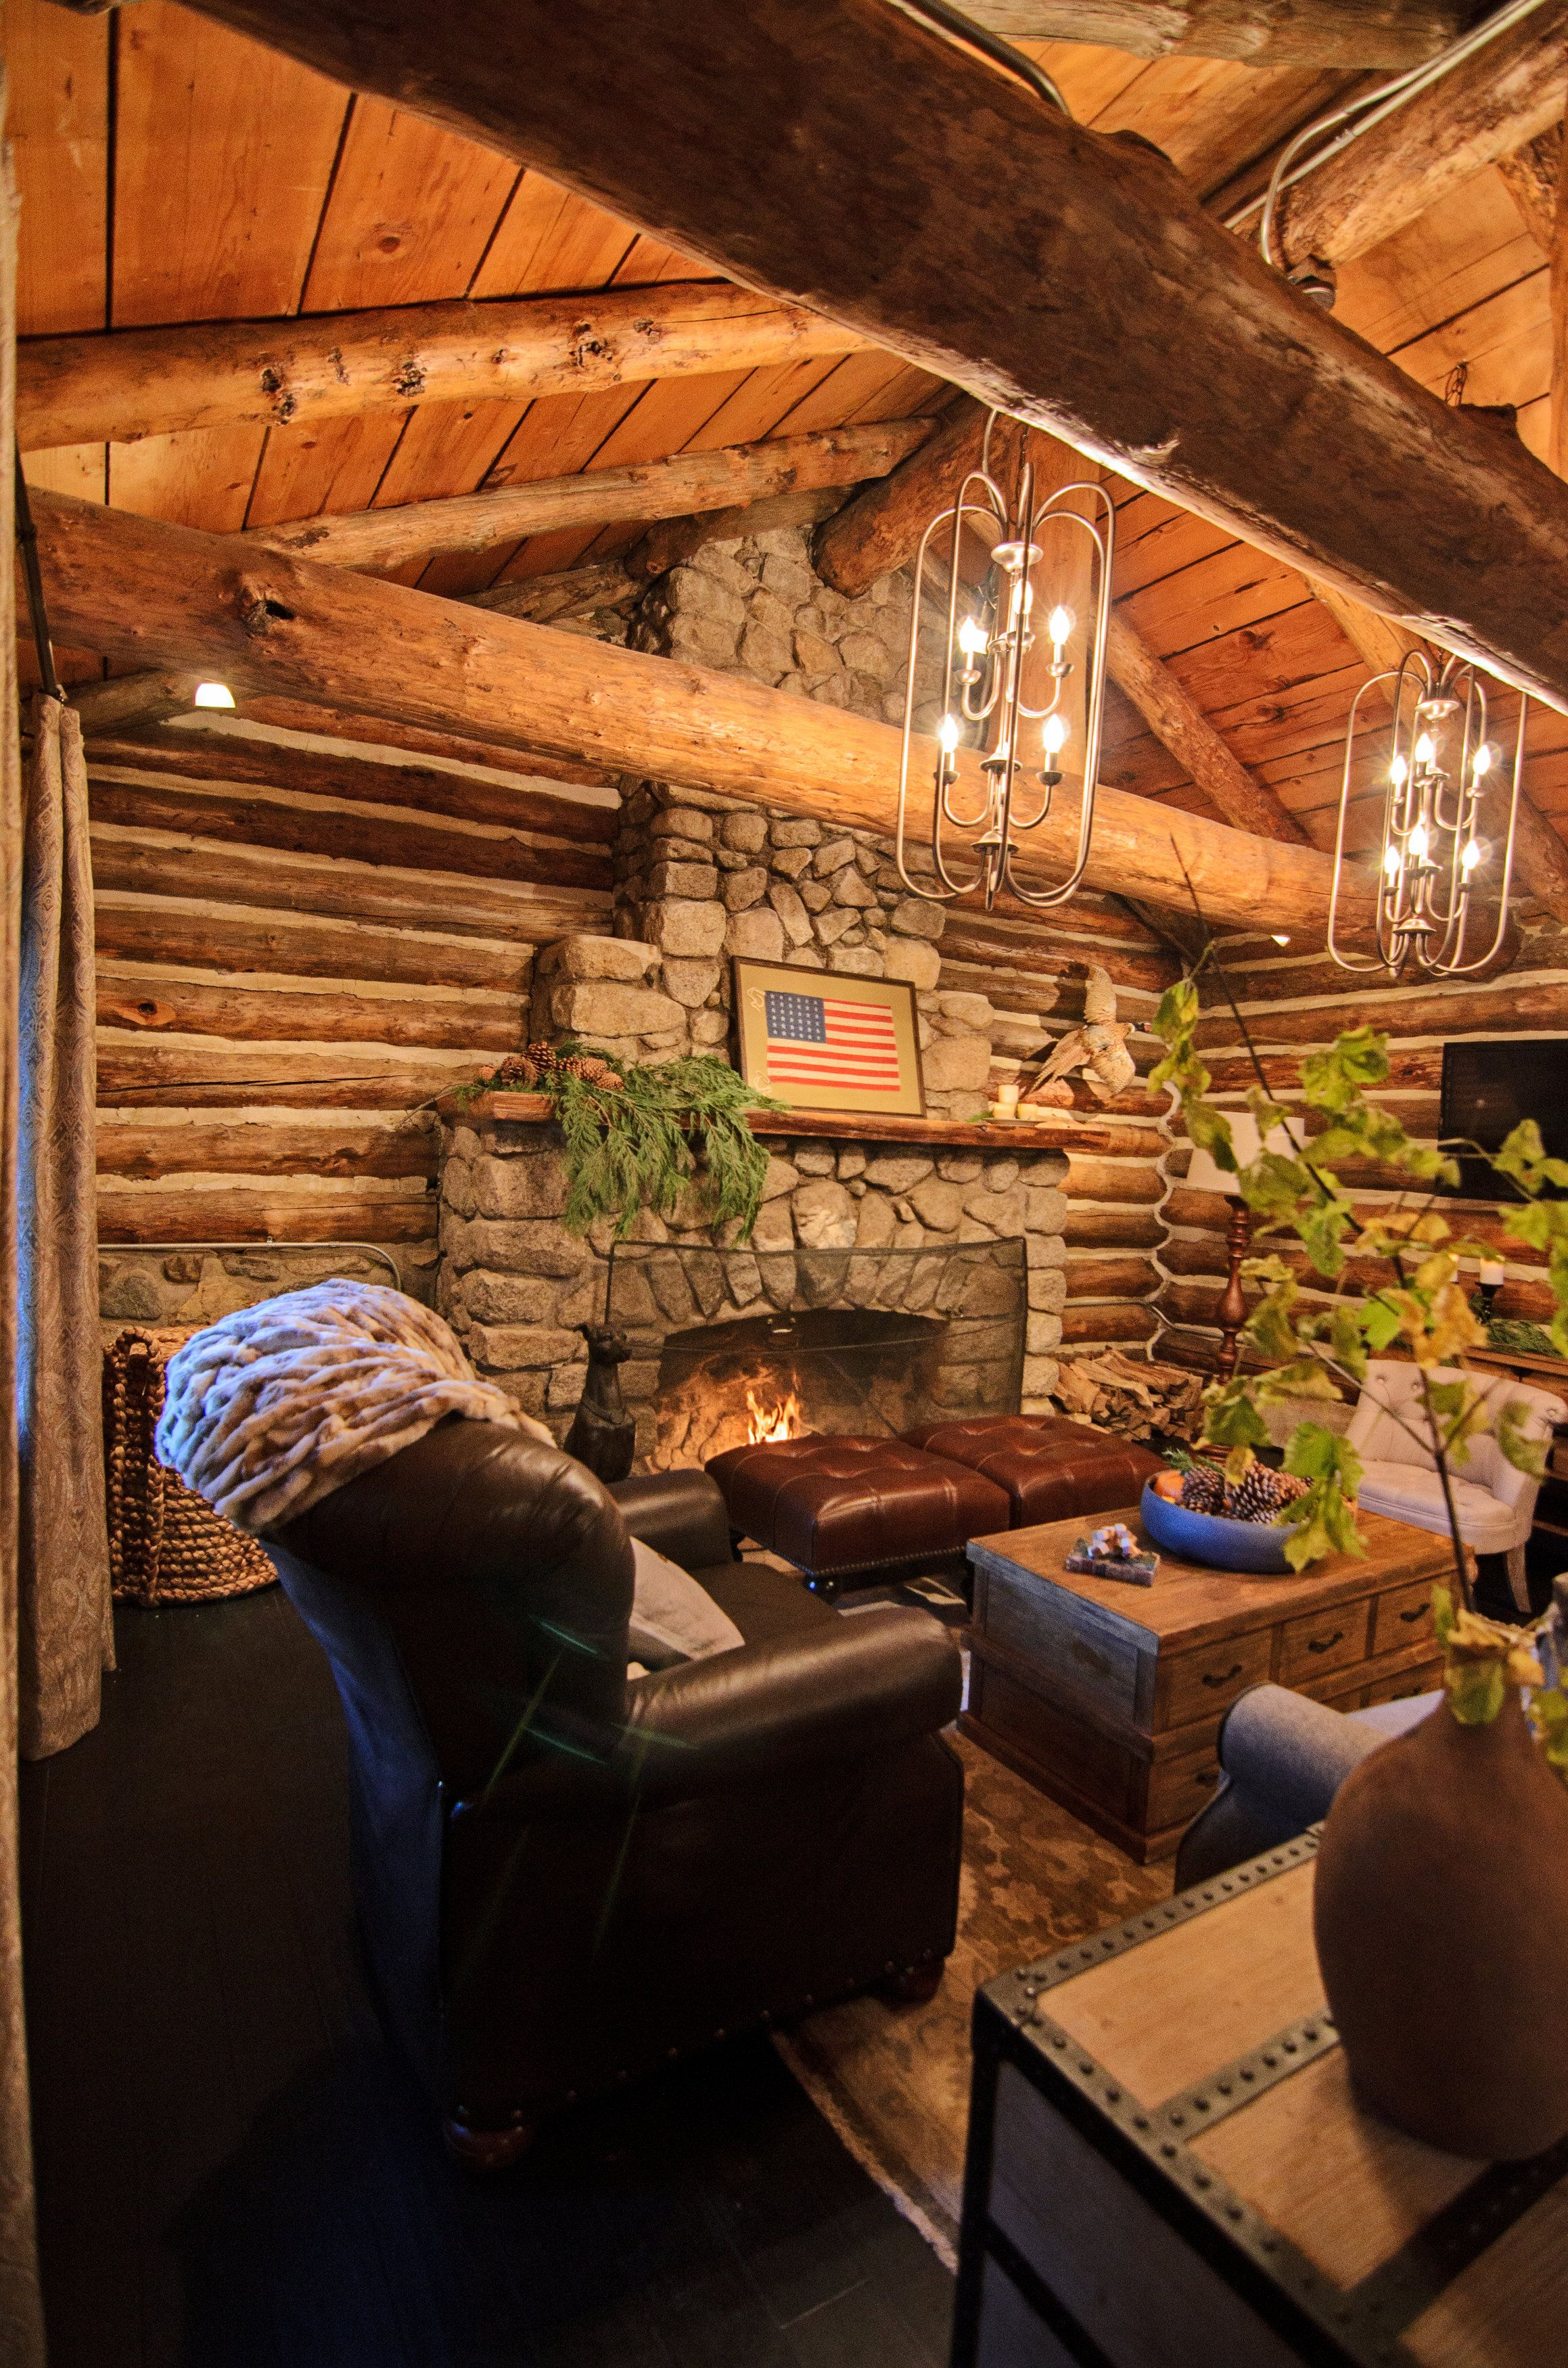 What do you think of this mountain cabin living room pleted by